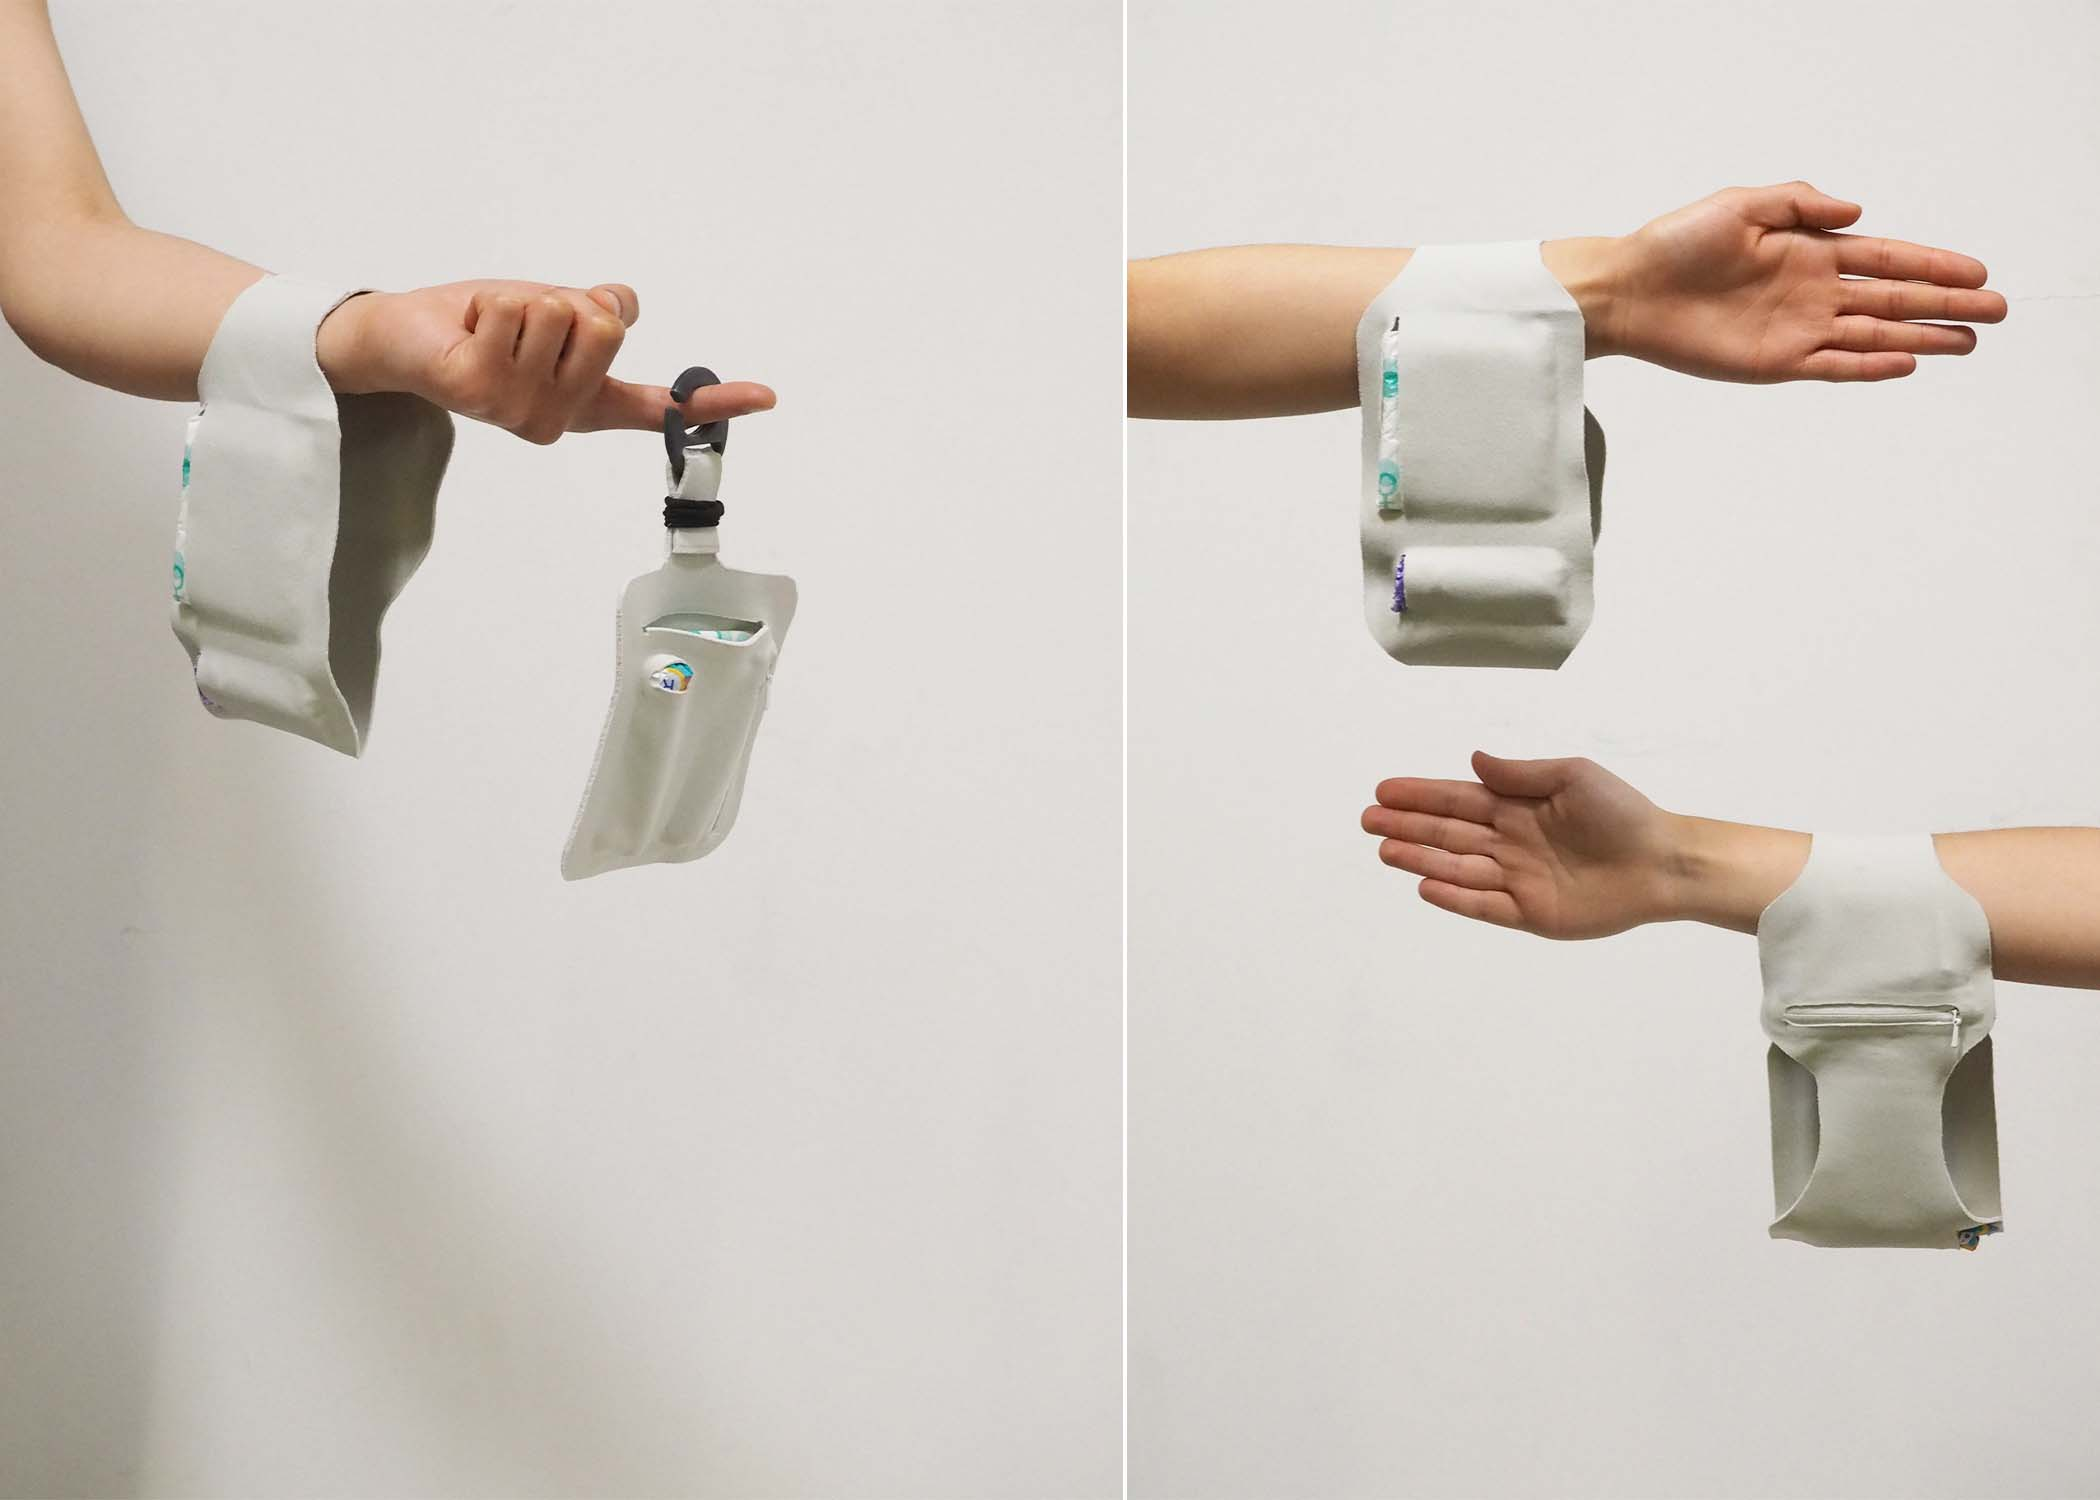 arms with white wrist bandage